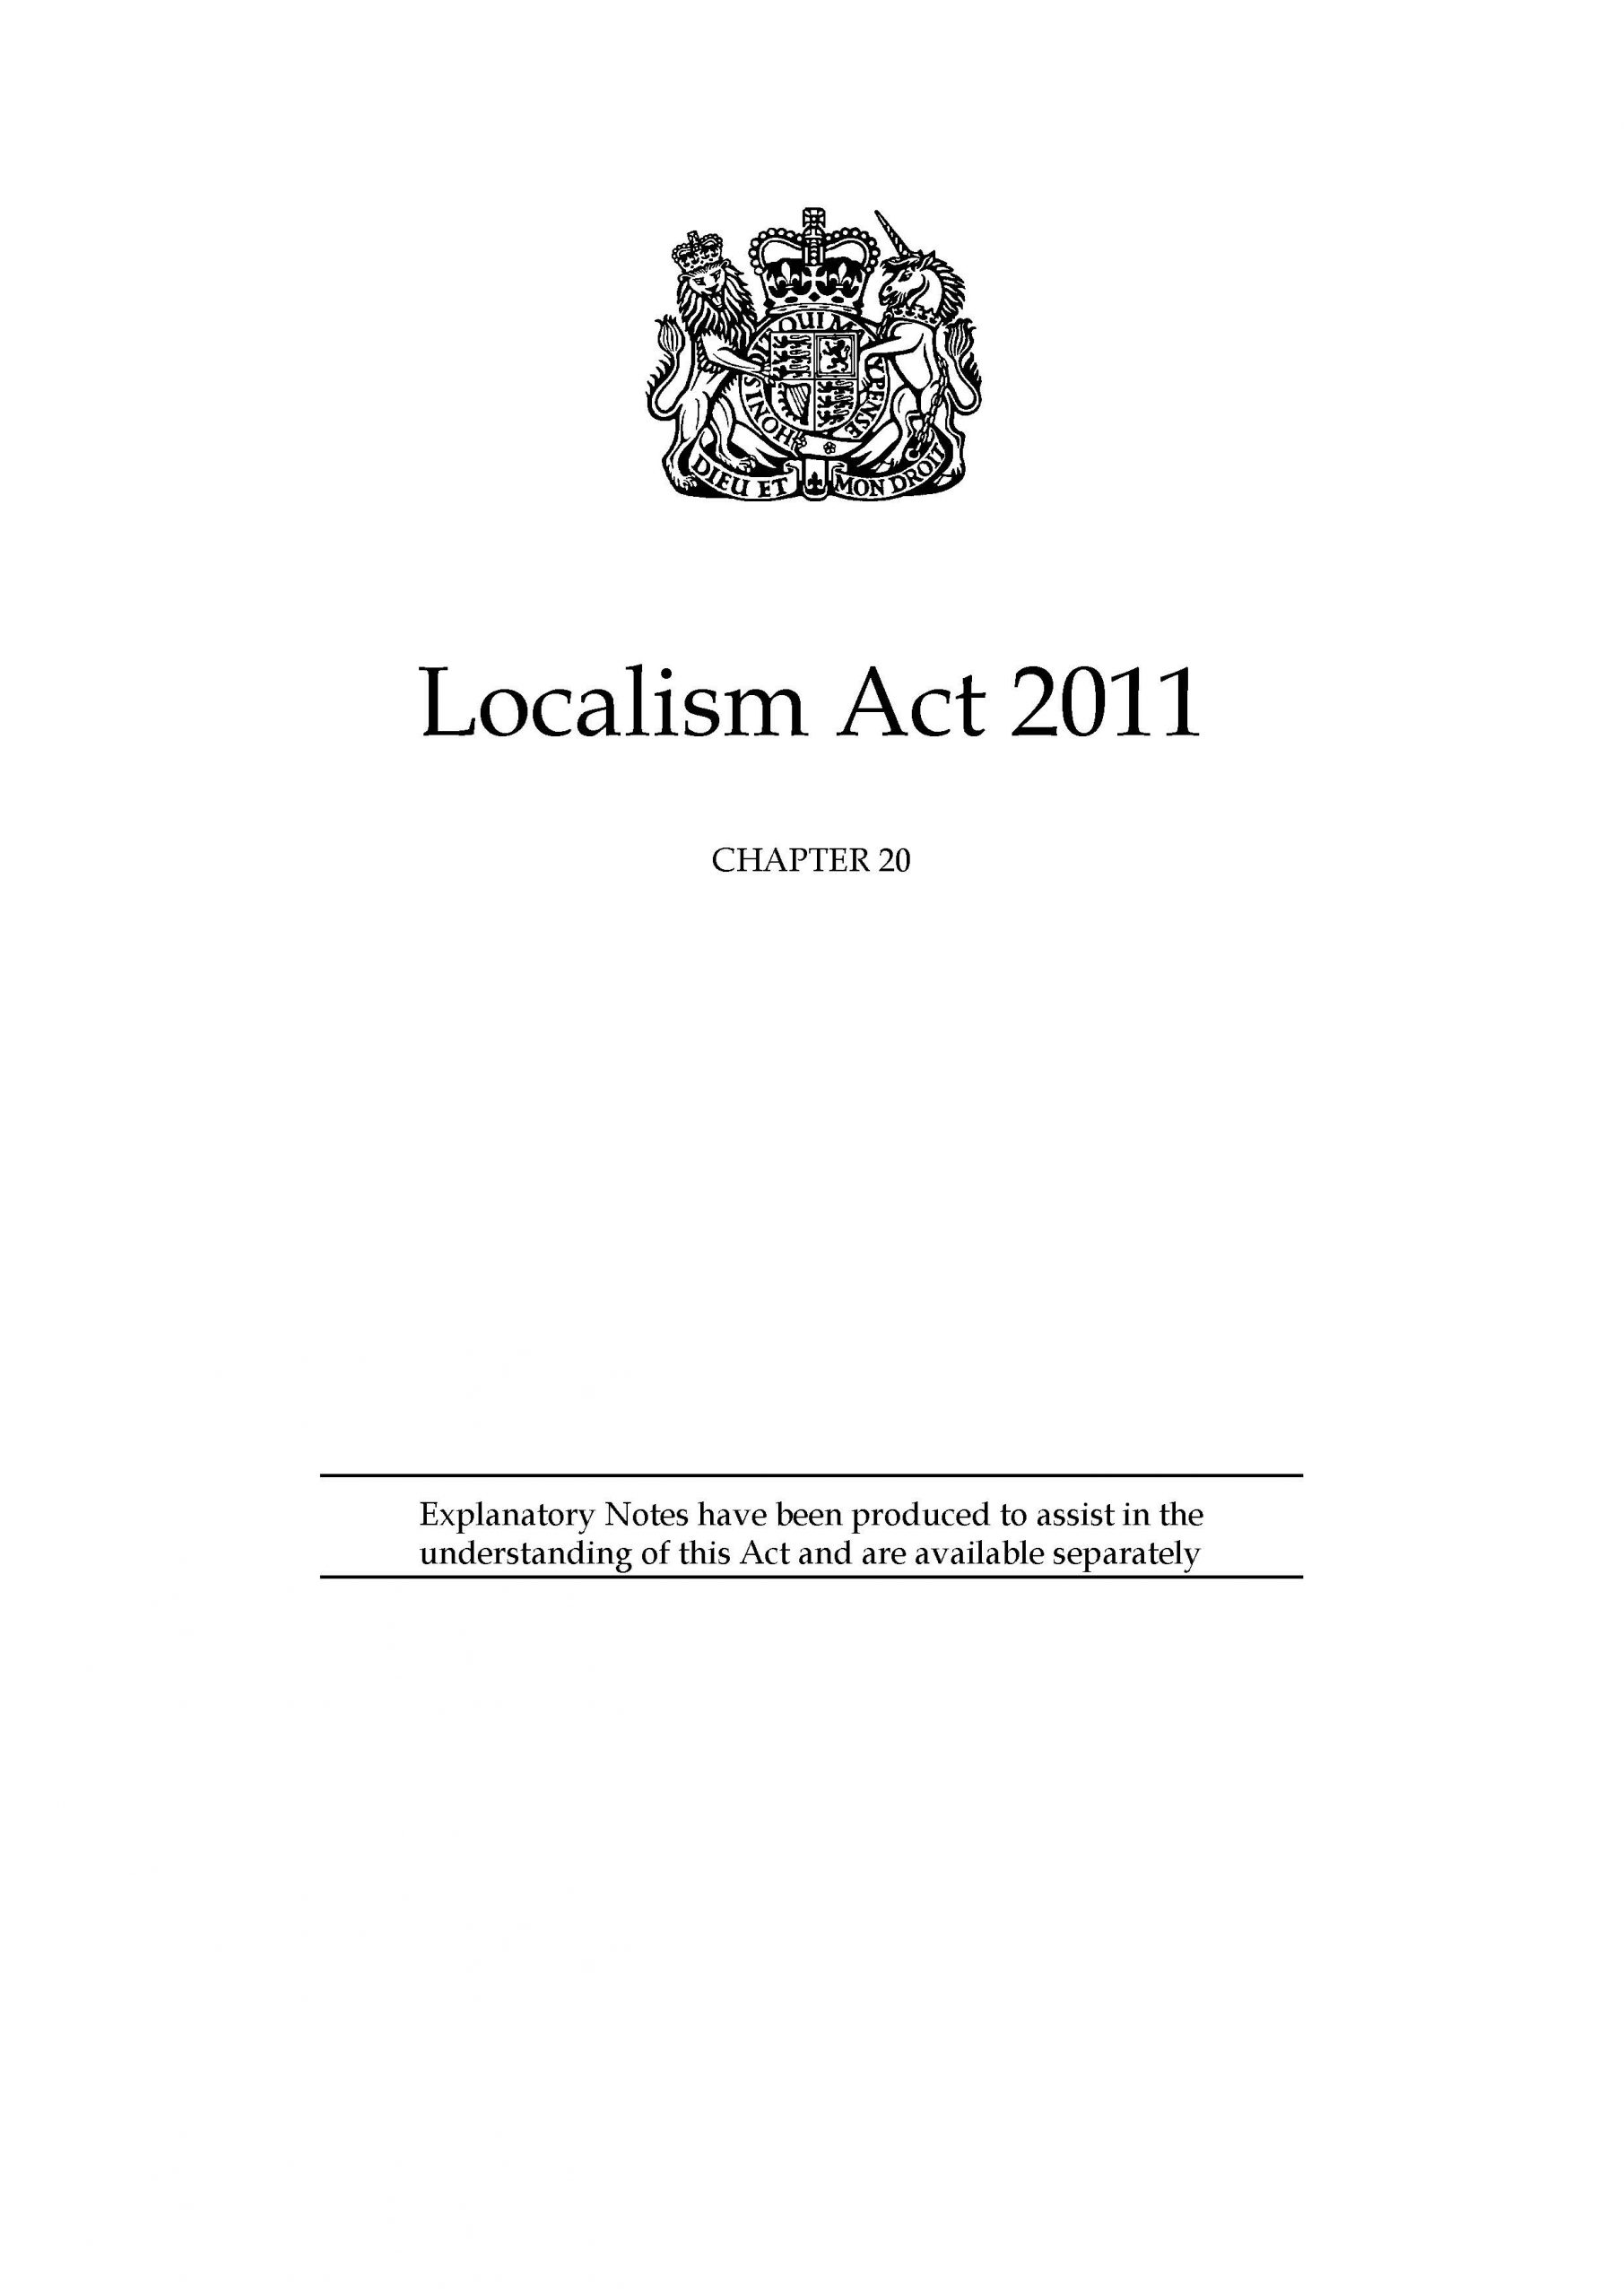 Localism Act 2011 – Part 5 – Chapter 3